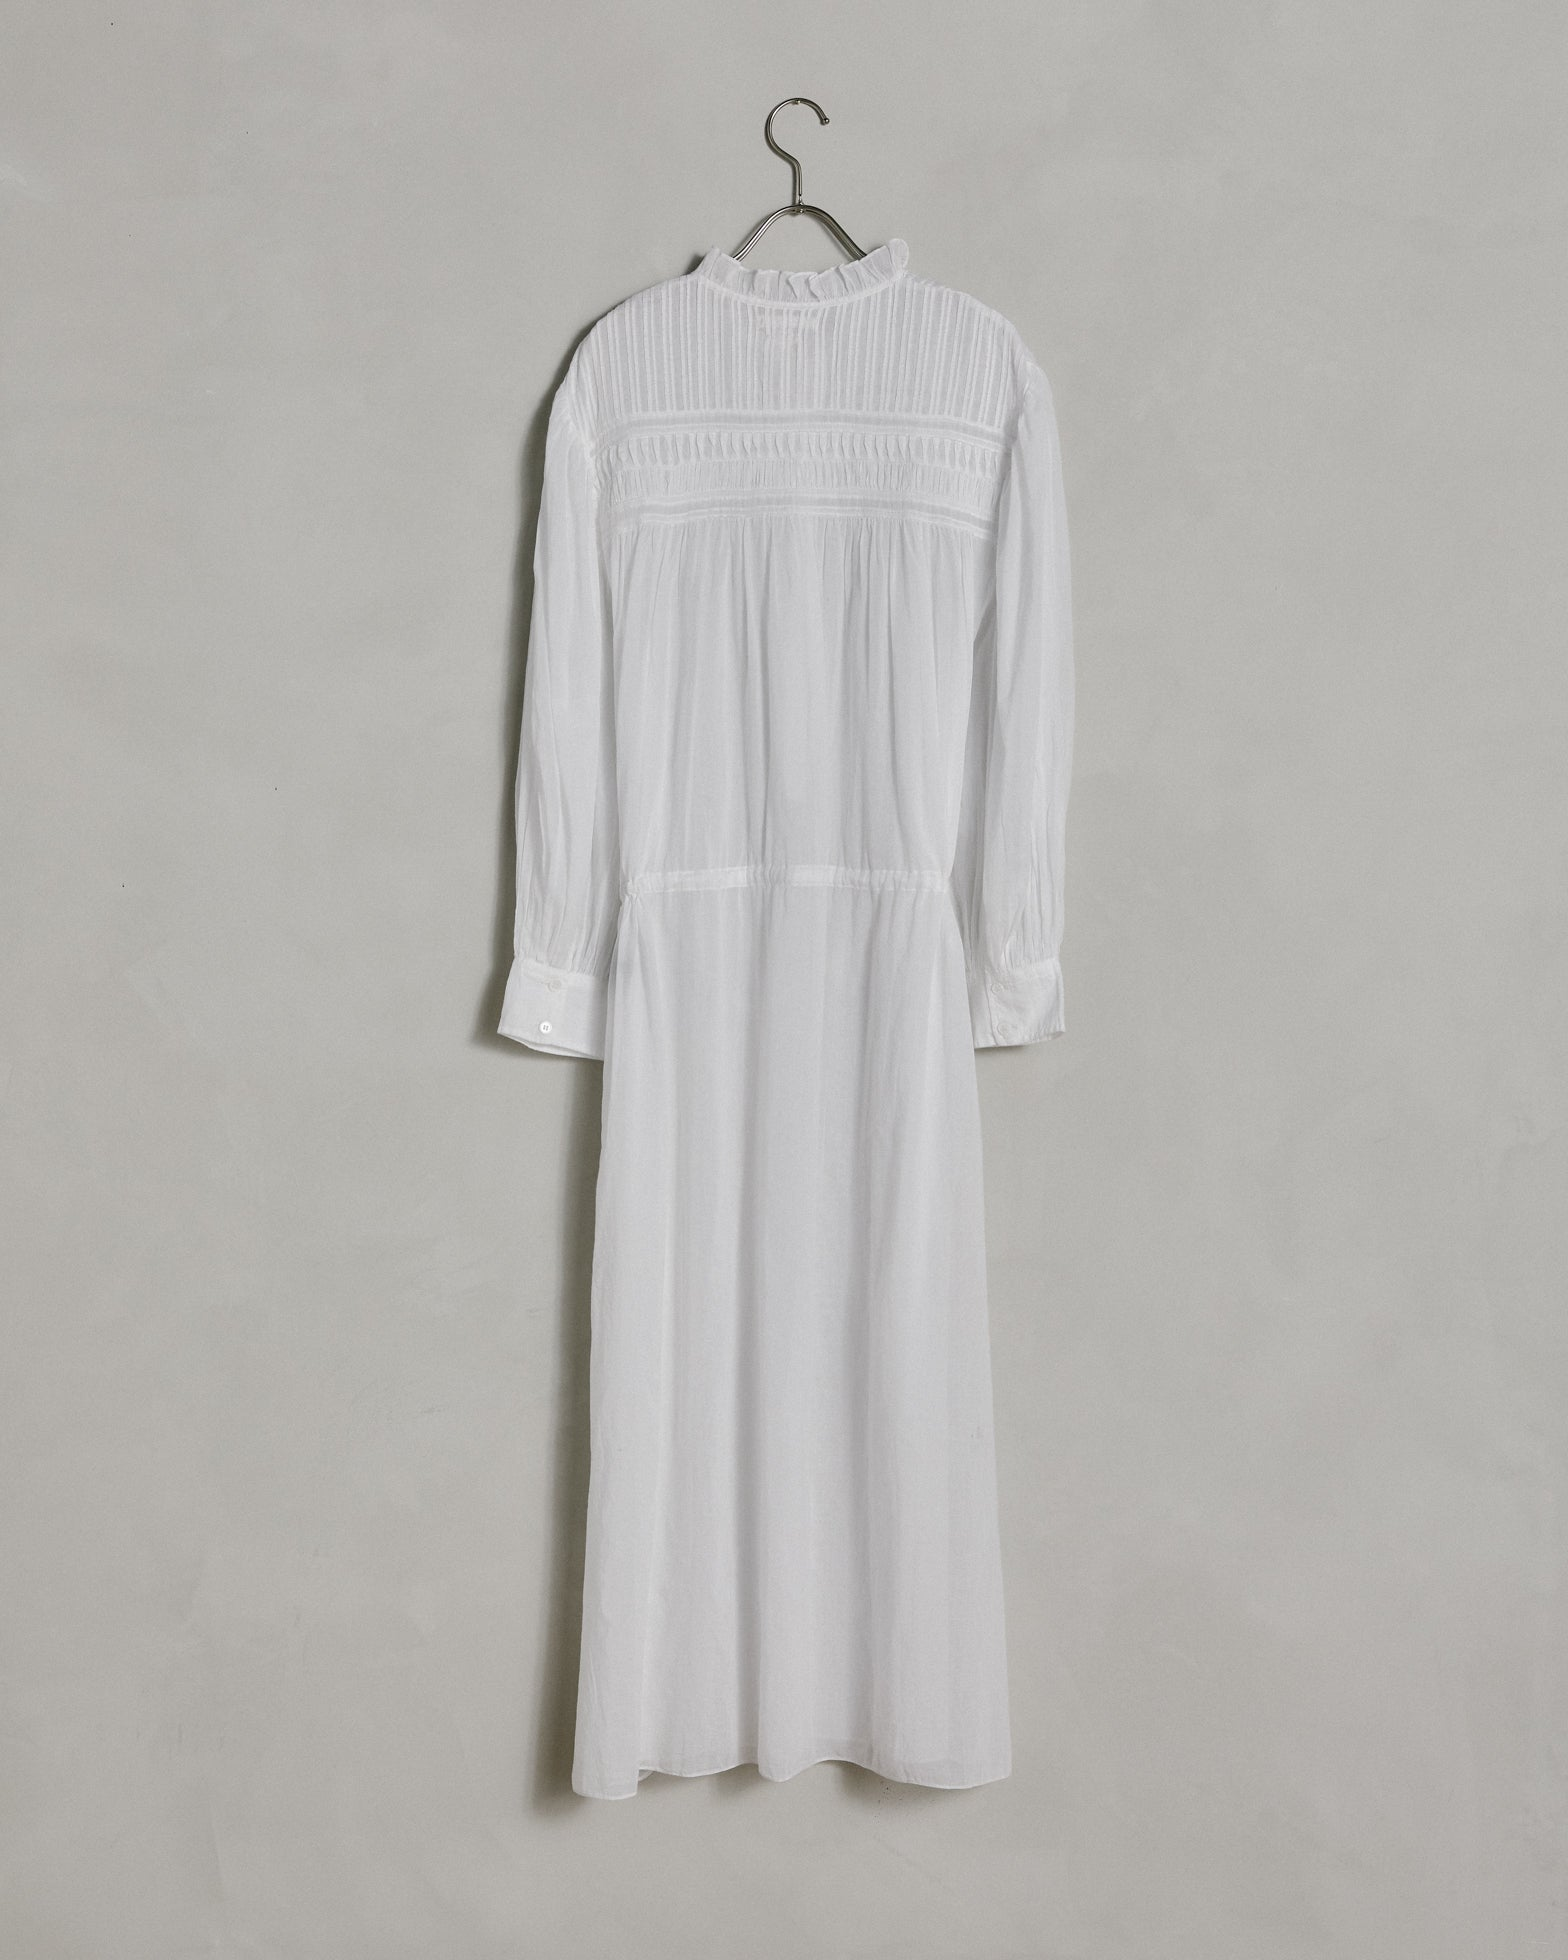 Perkins Dress in White